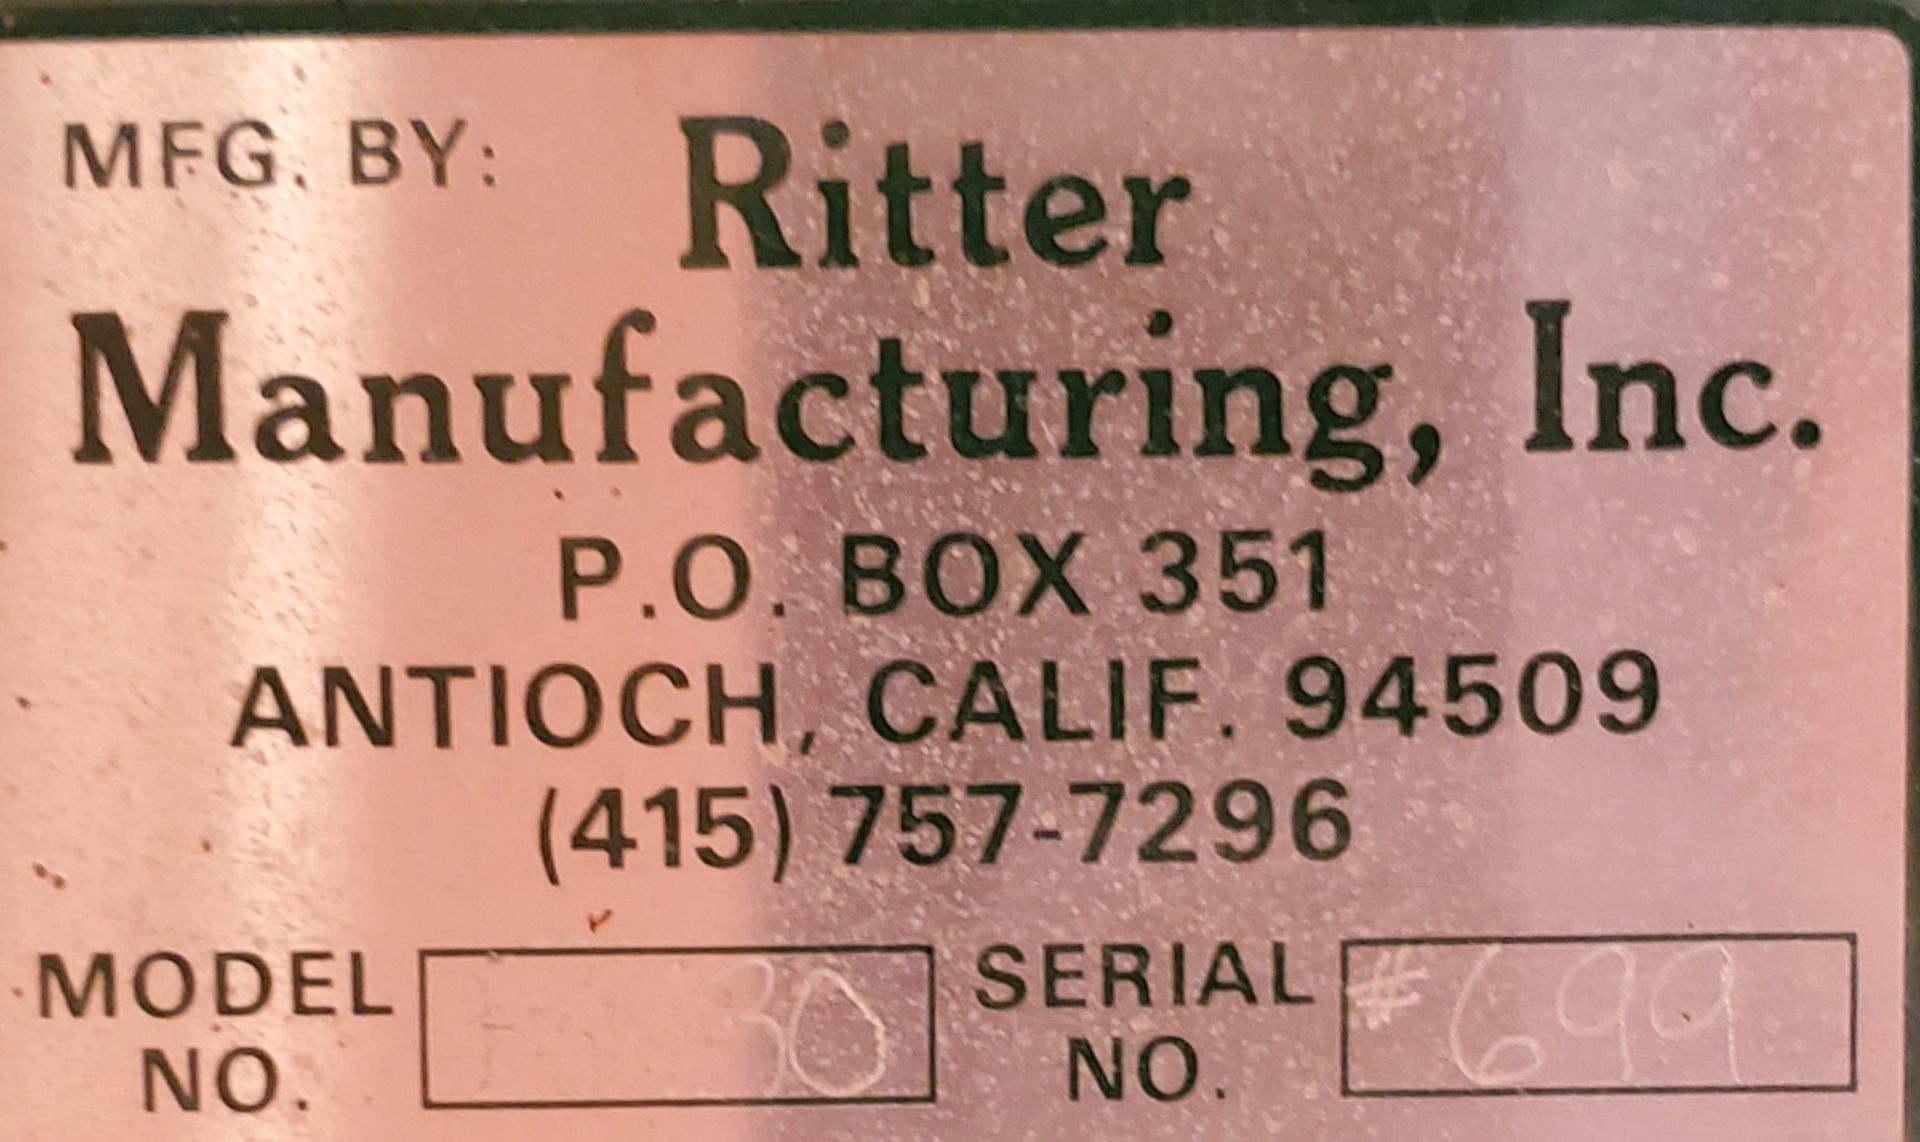 Ritter 1 Spindle Boring Machine, Pneumatic Foot Pedal, Baldor 3/4 HP 115/230 Volts 1 Phase Motor - Image 3 of 7